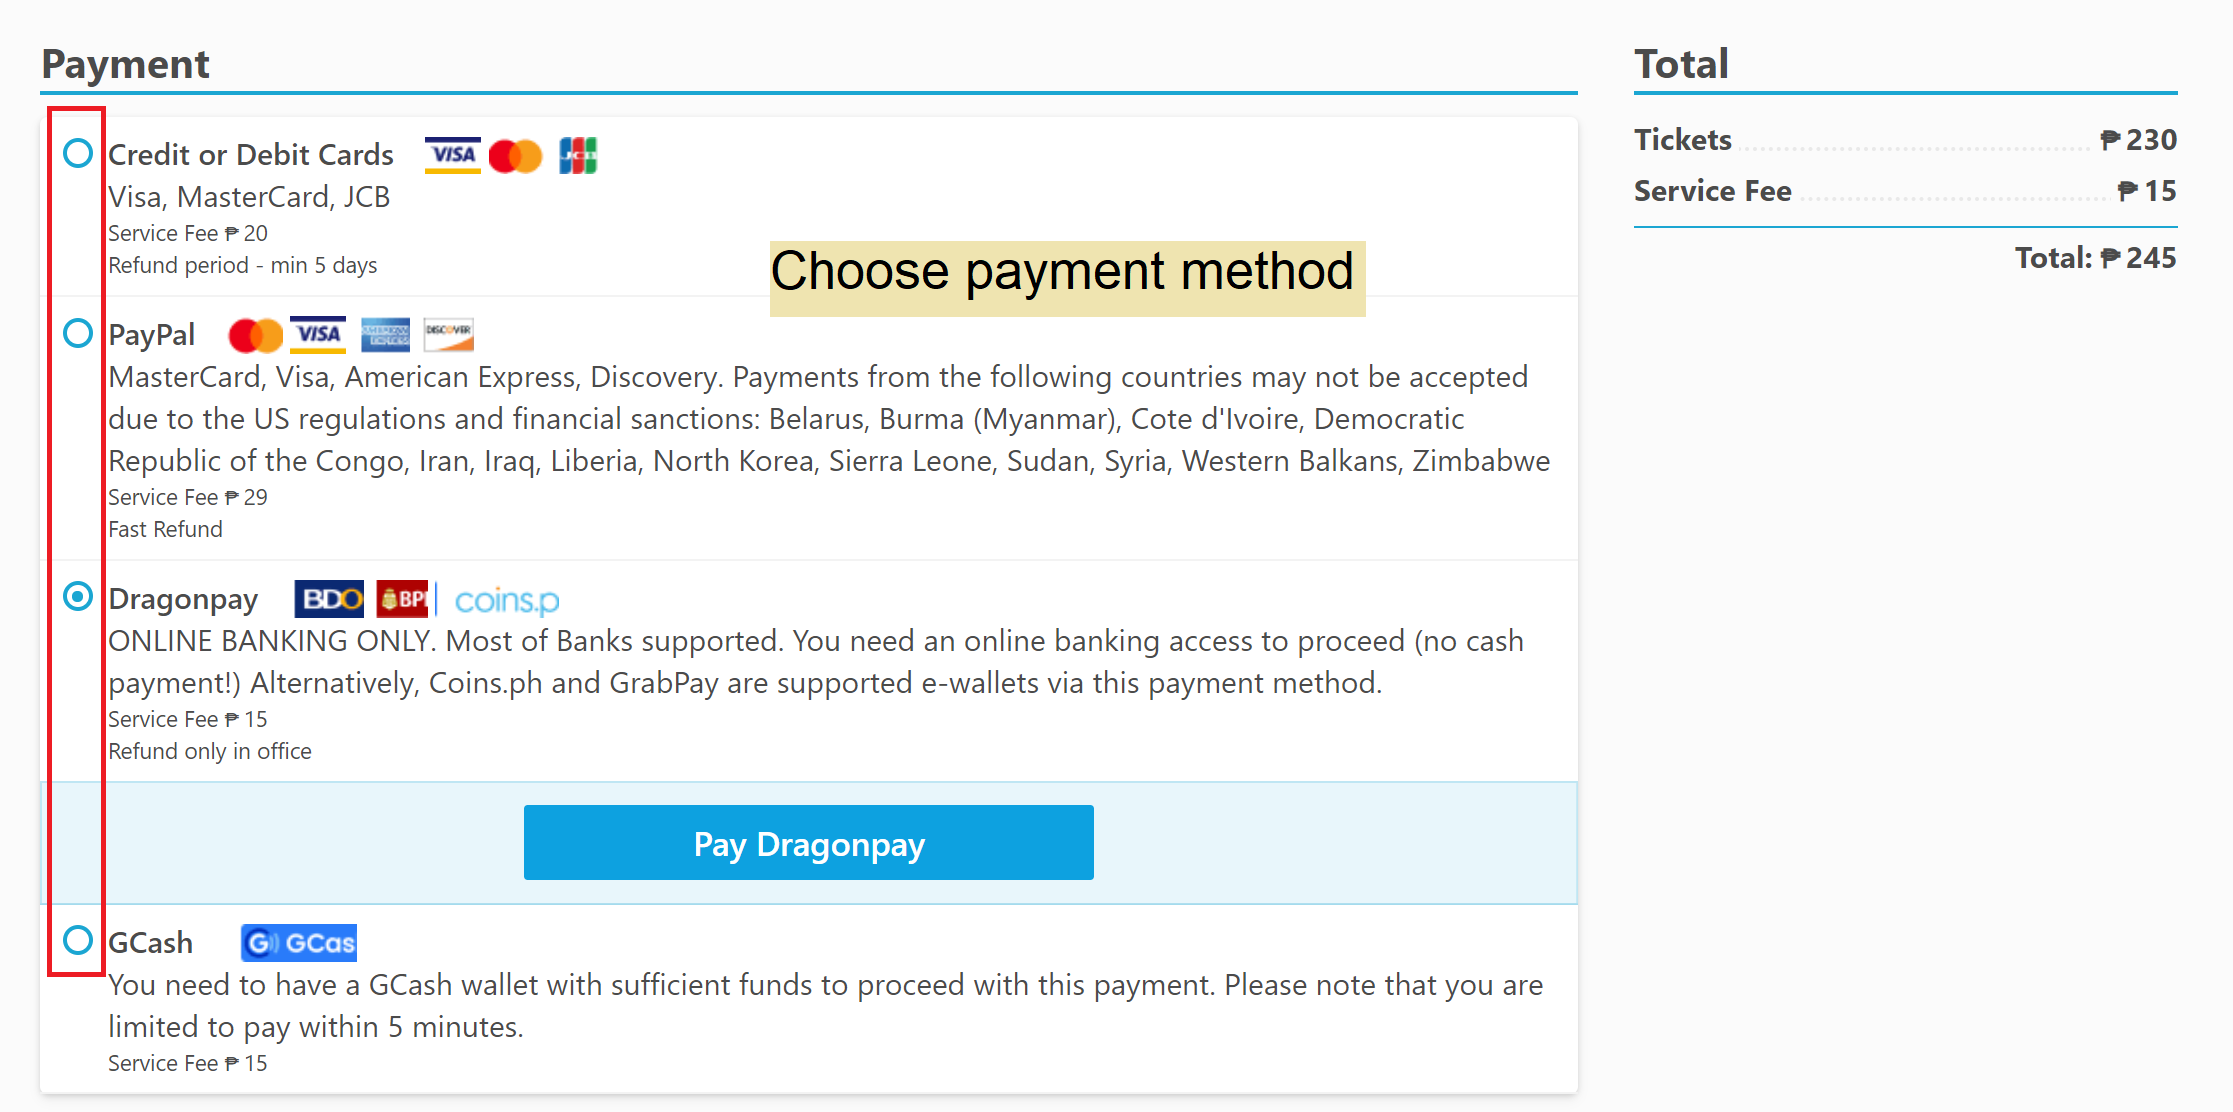 phbus-payment-options.png